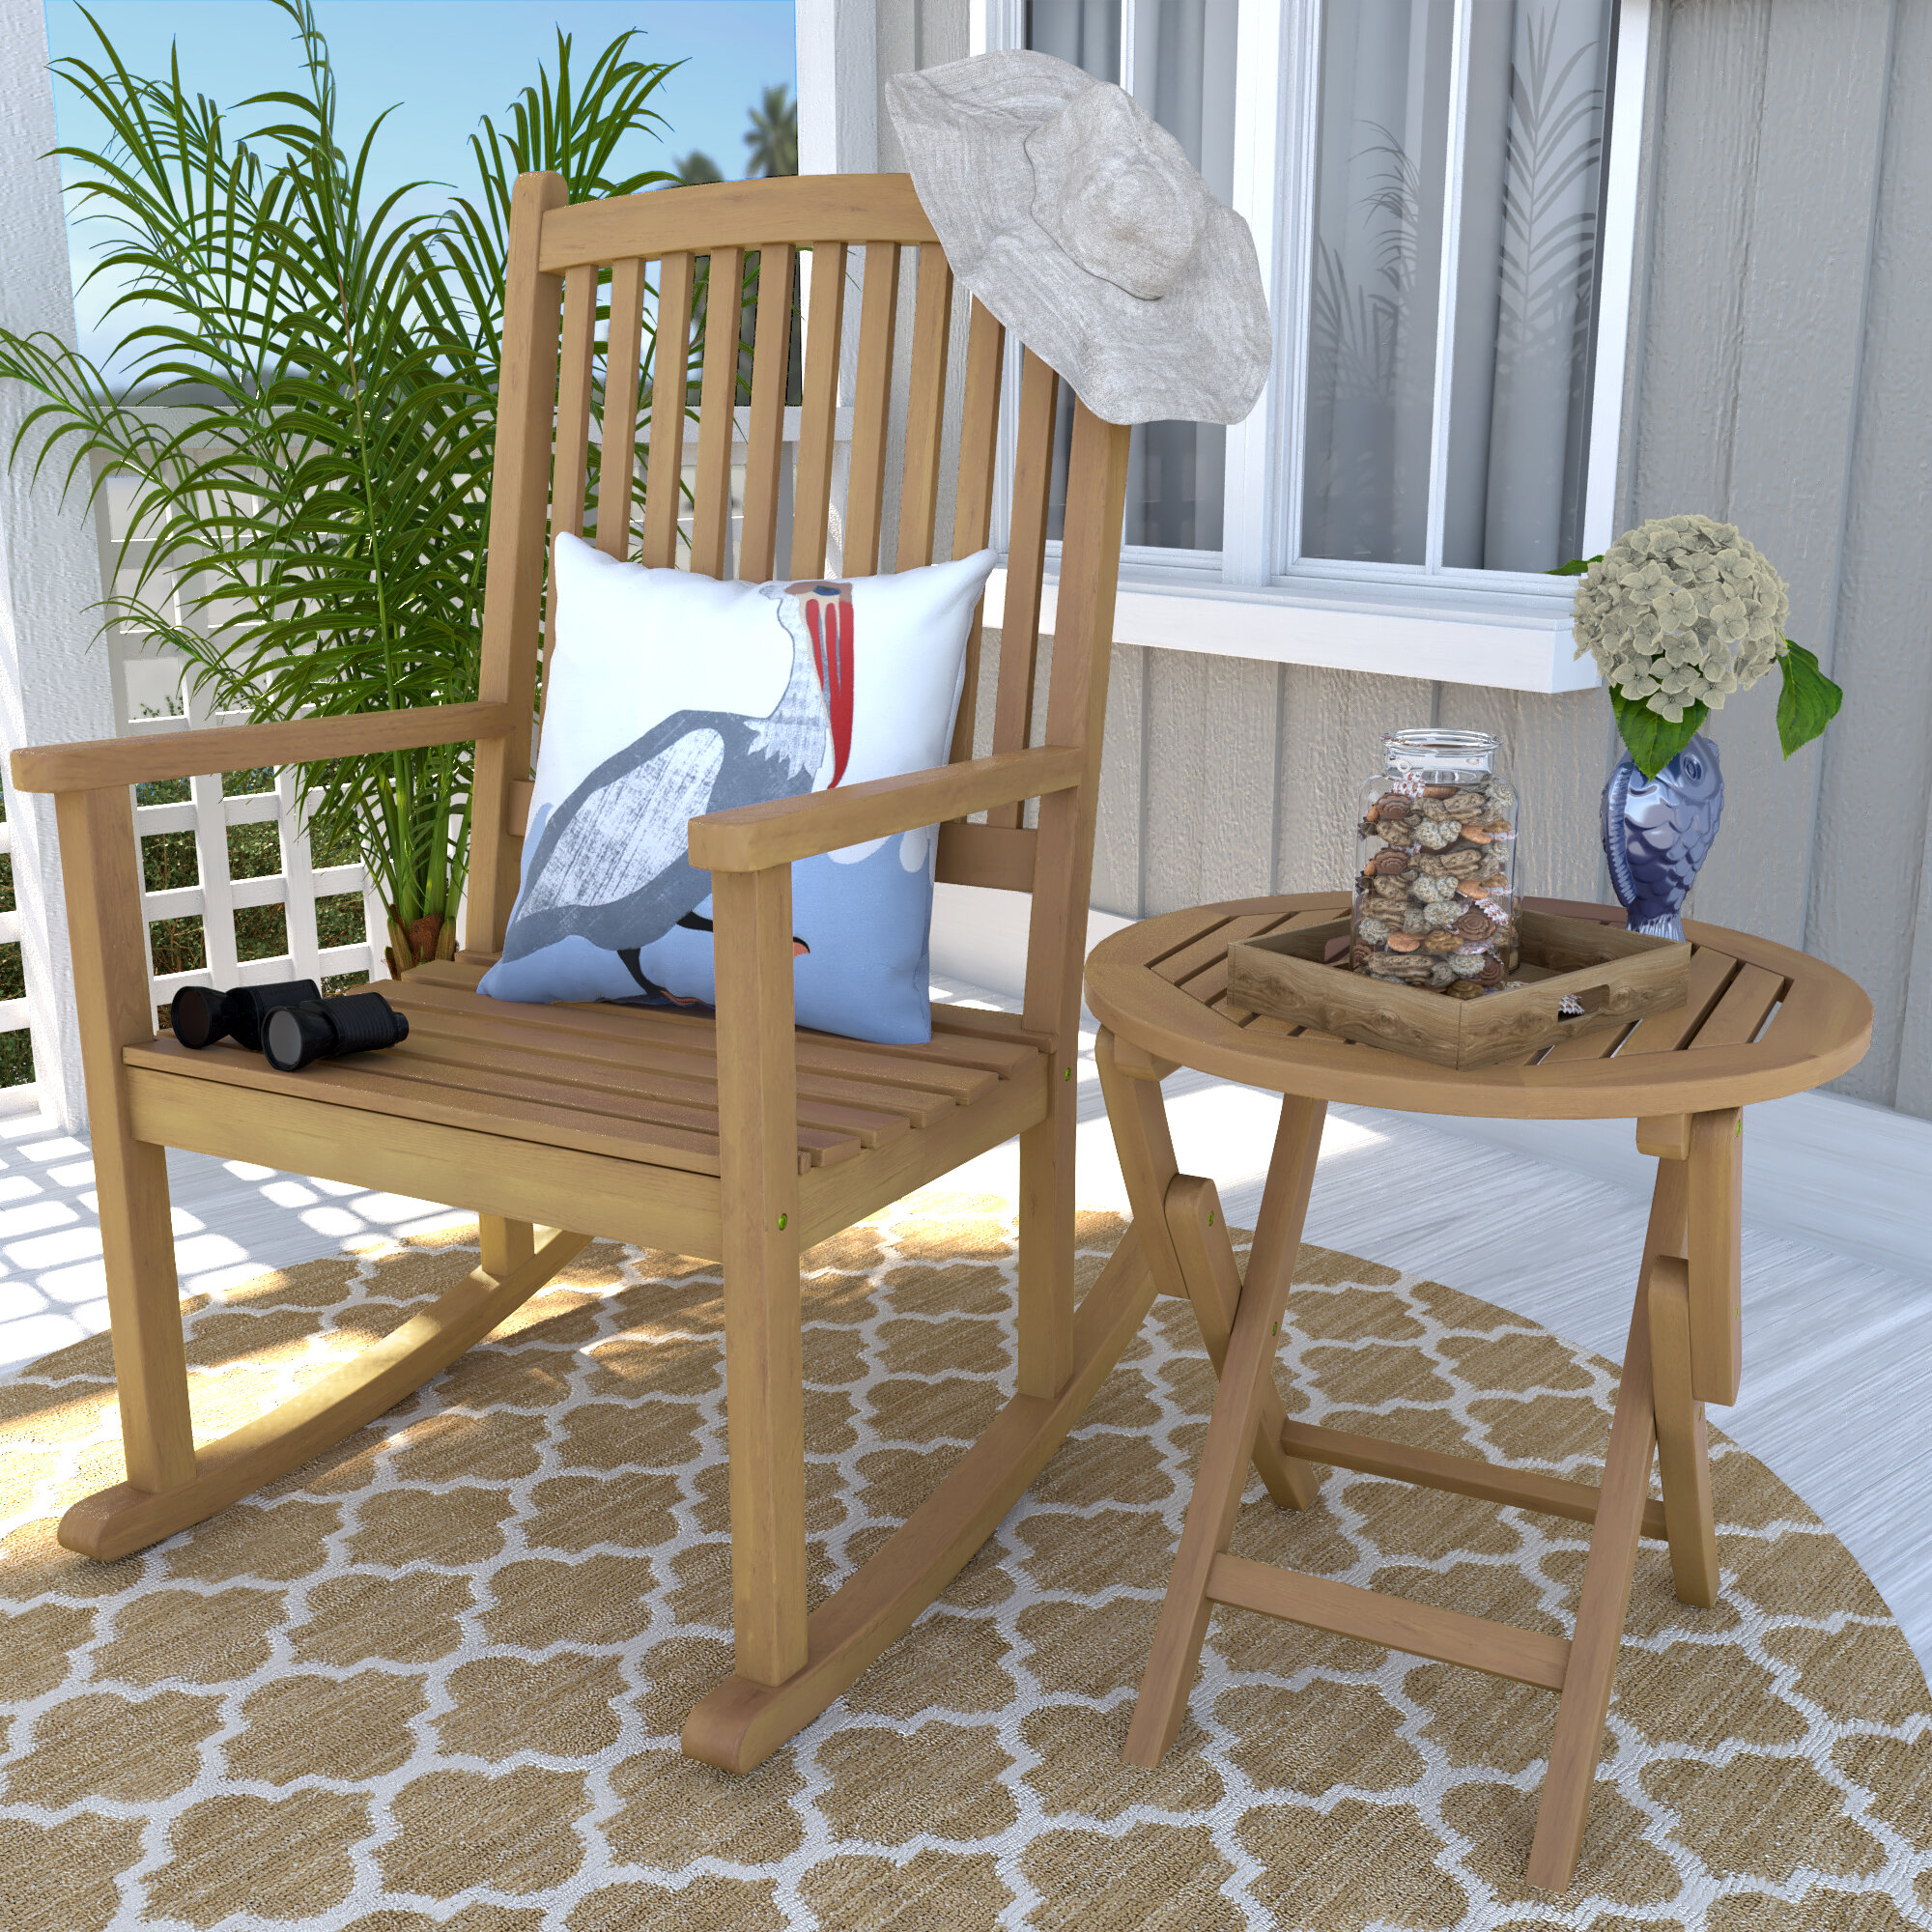 Beachcrest Home Bristol 2 Piece Patio Chair and Table Set